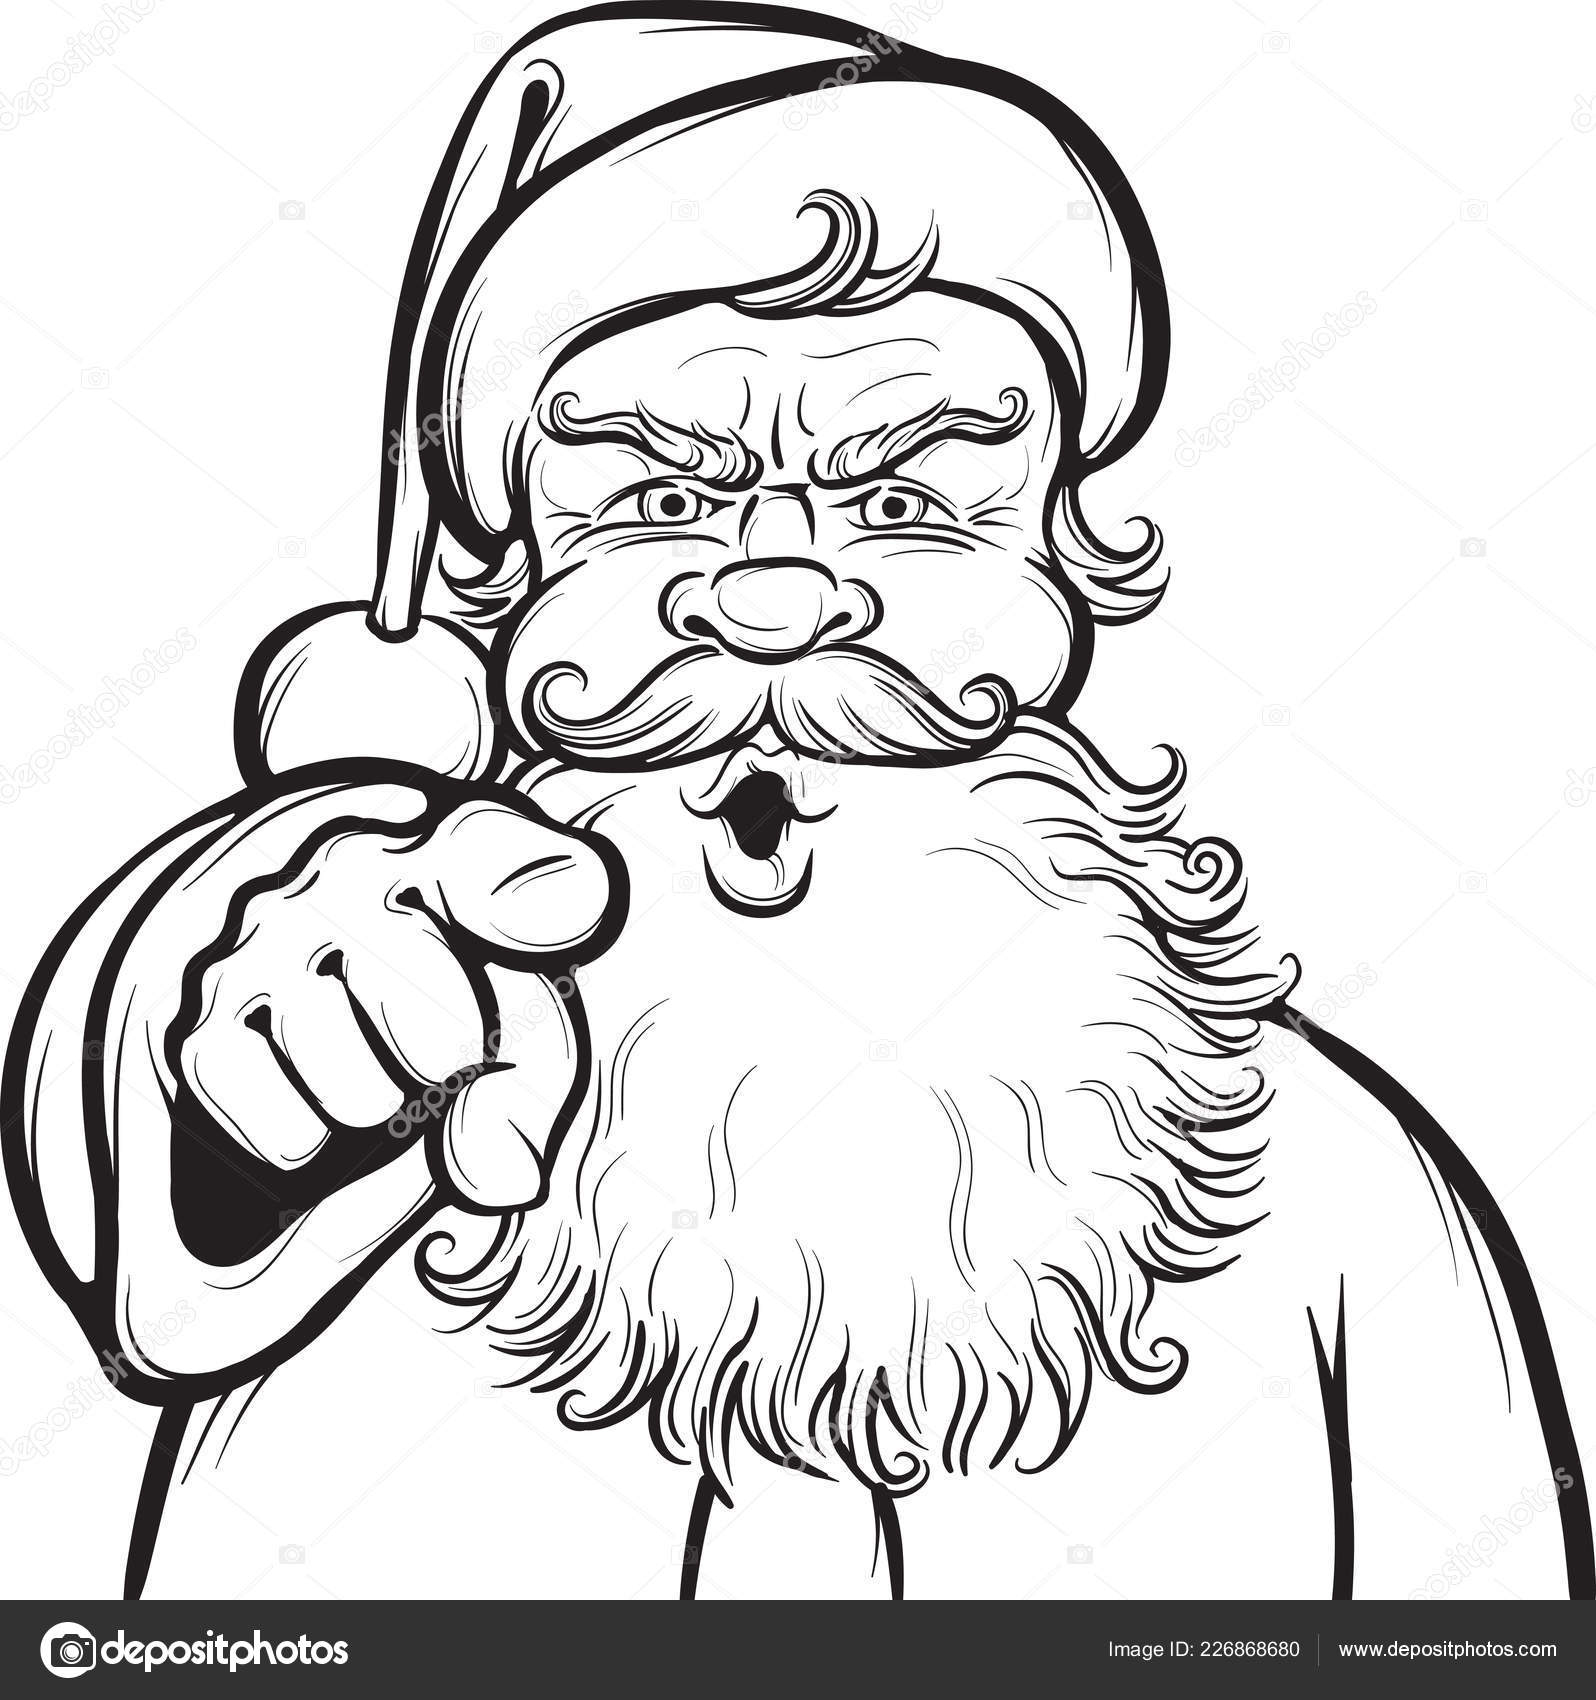 Santa Beard Coloring Page With Christmas Stock Vector One Line Man 226868680